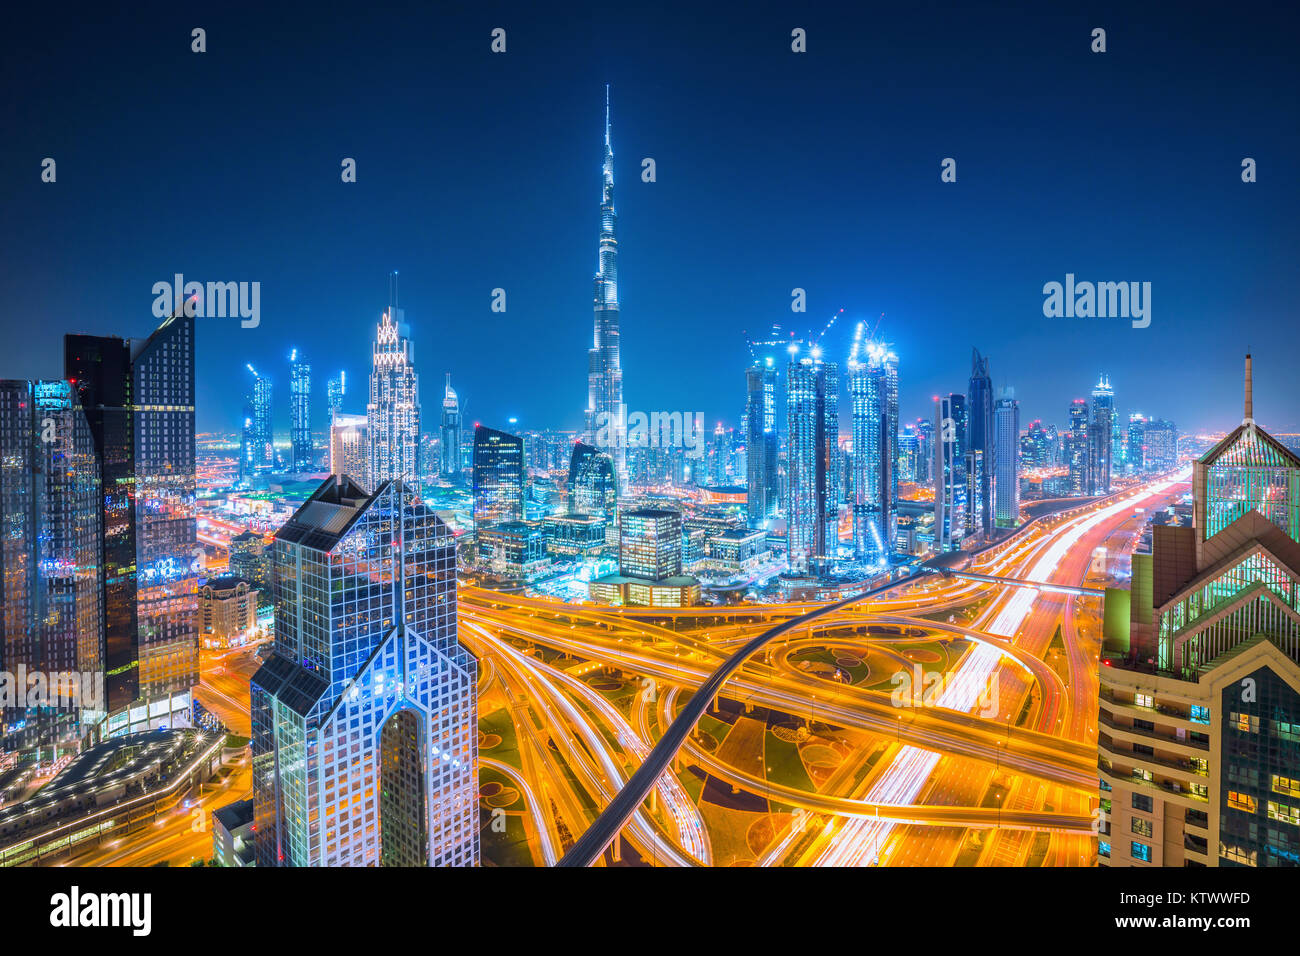 Dubai skyline at sunset with beautiful city center lights and Sheikh Zayed road traffic,Dubai,United Arab Emirates - Stock Image